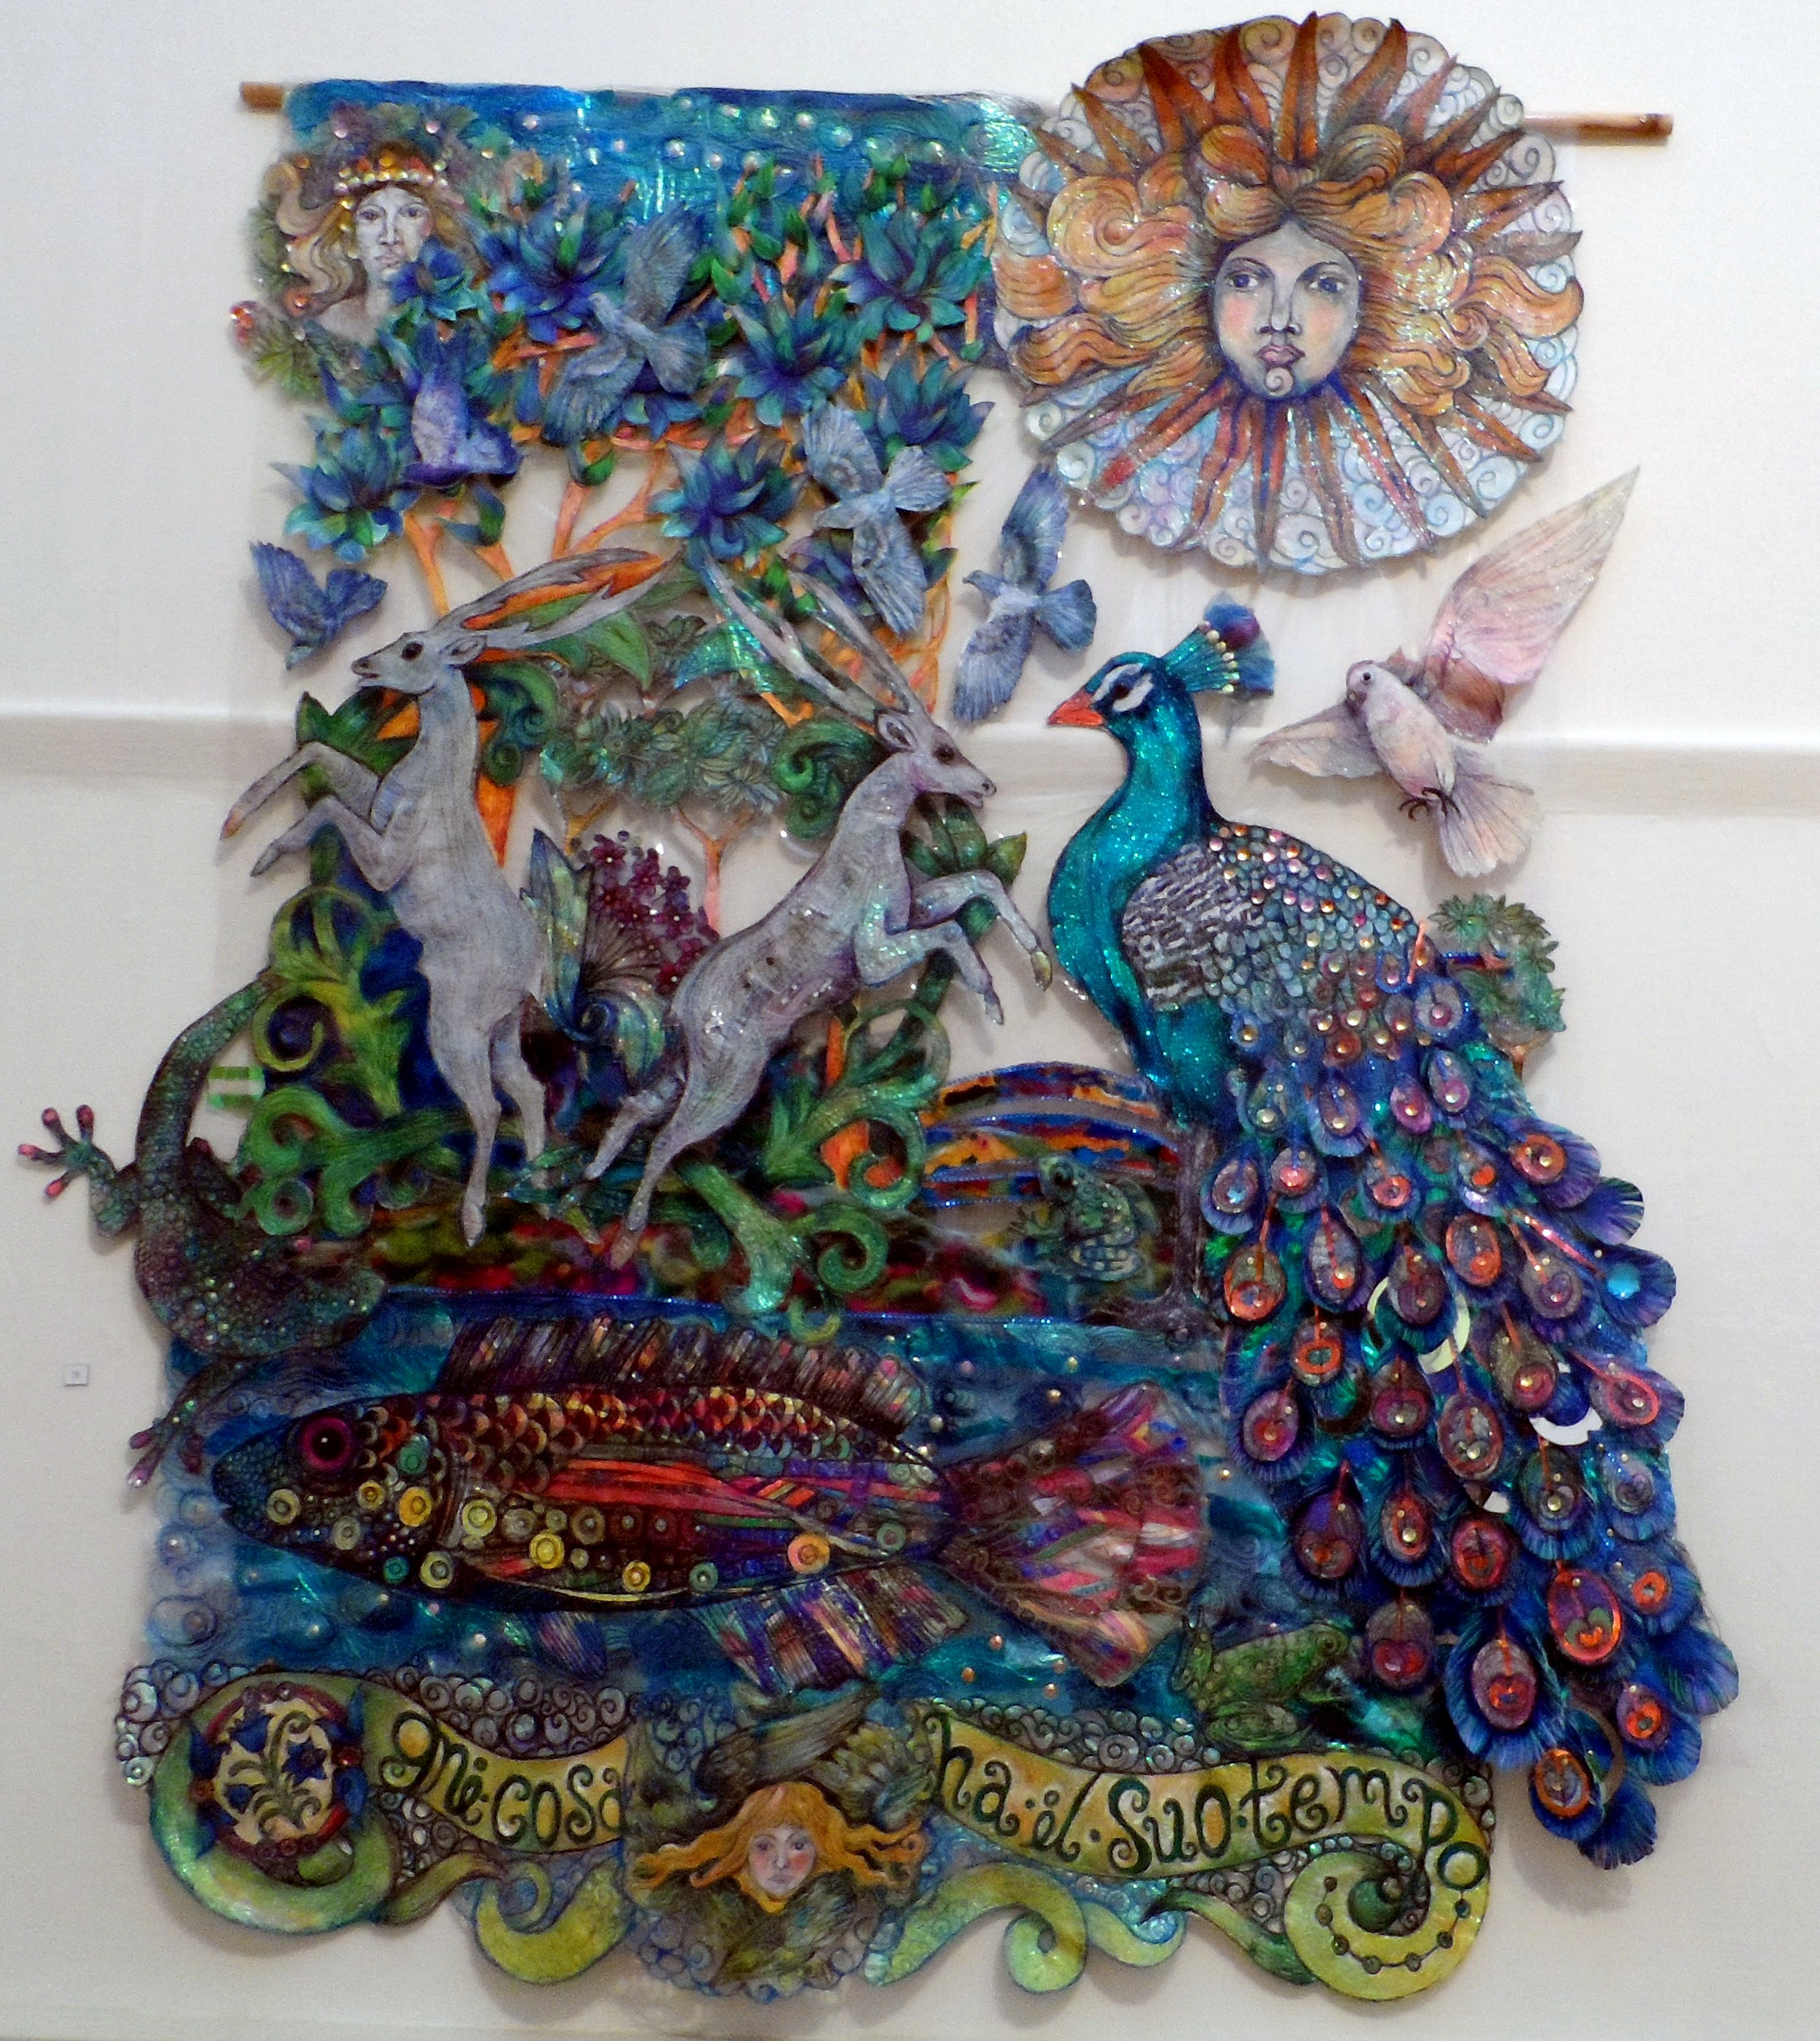 THE DREAM OF THE HUNTSMAN by Nikki Parmenter, Williamson Gallery, 2019